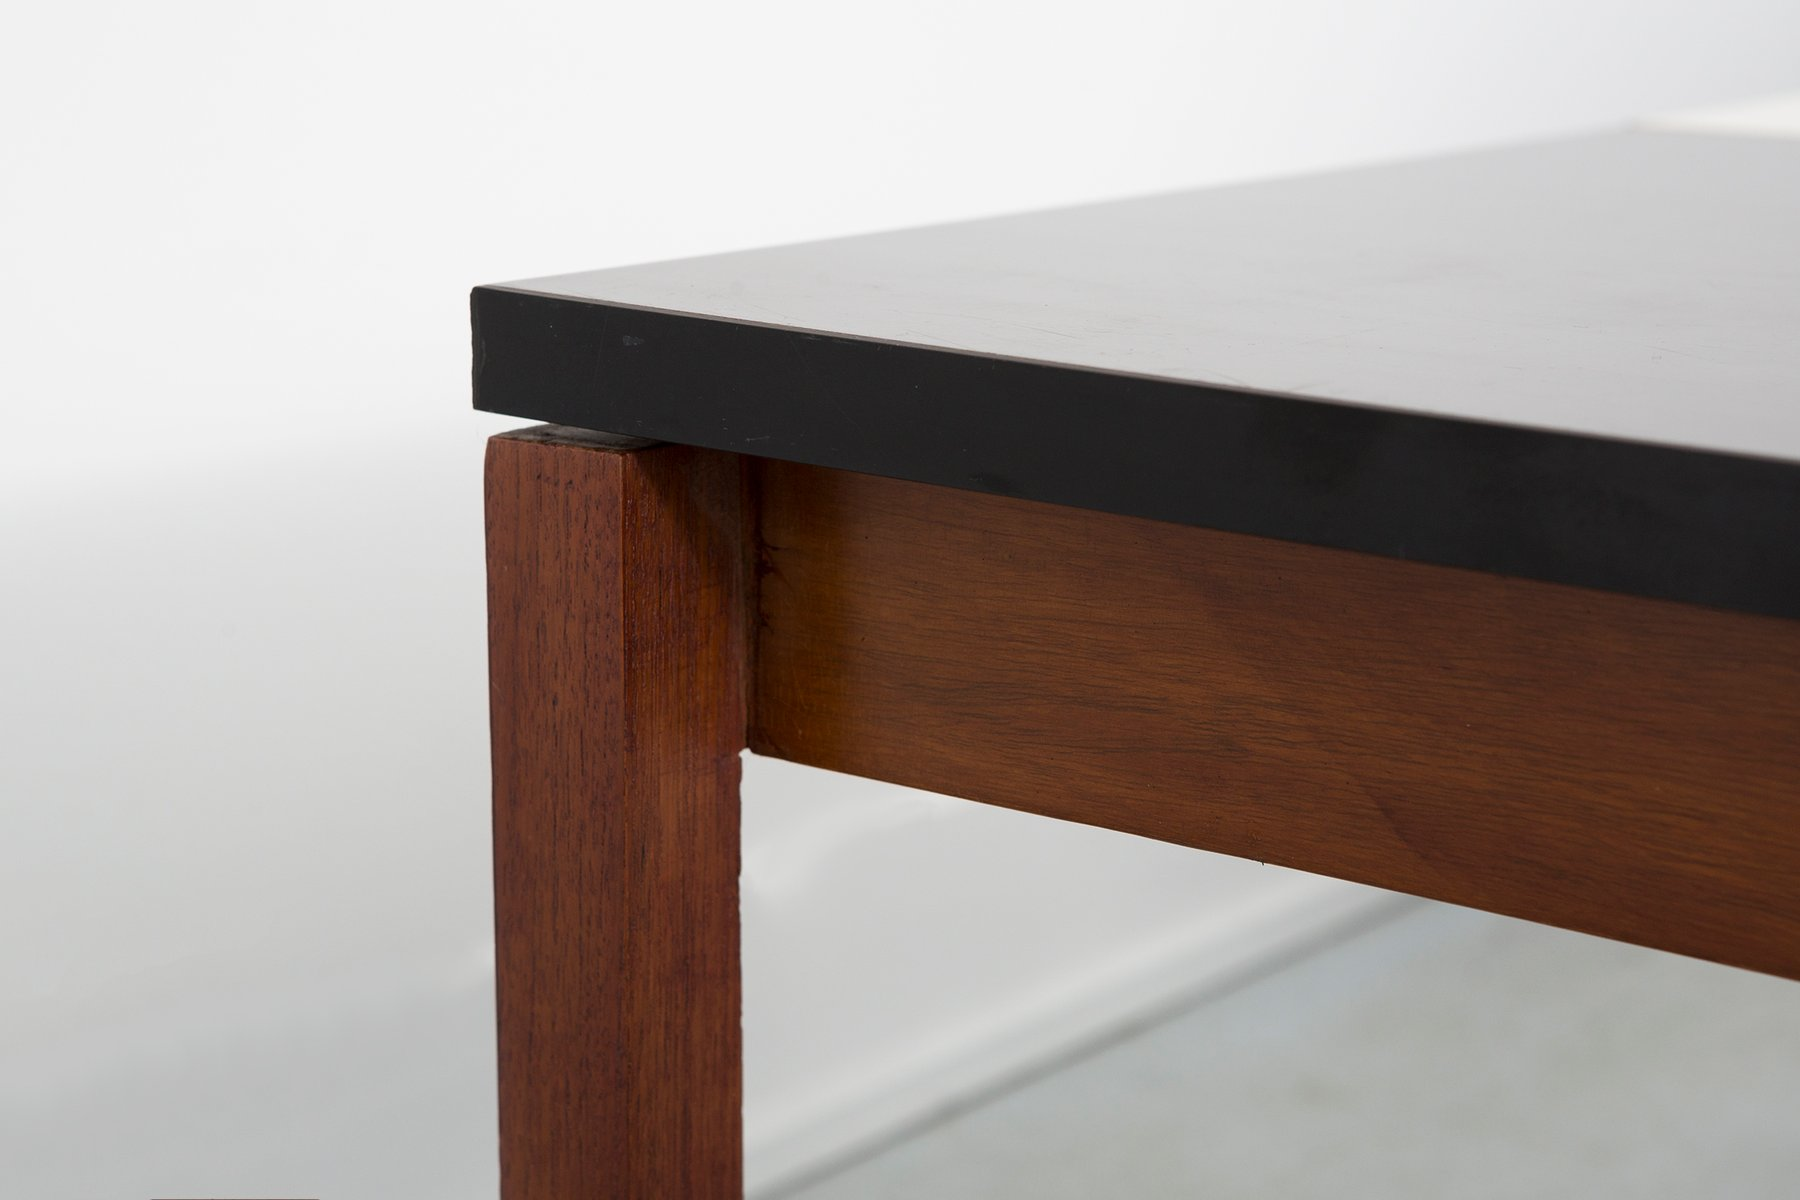 Coffee table by lewis butler for knoll 1960s for sale at for Prem table 99 00